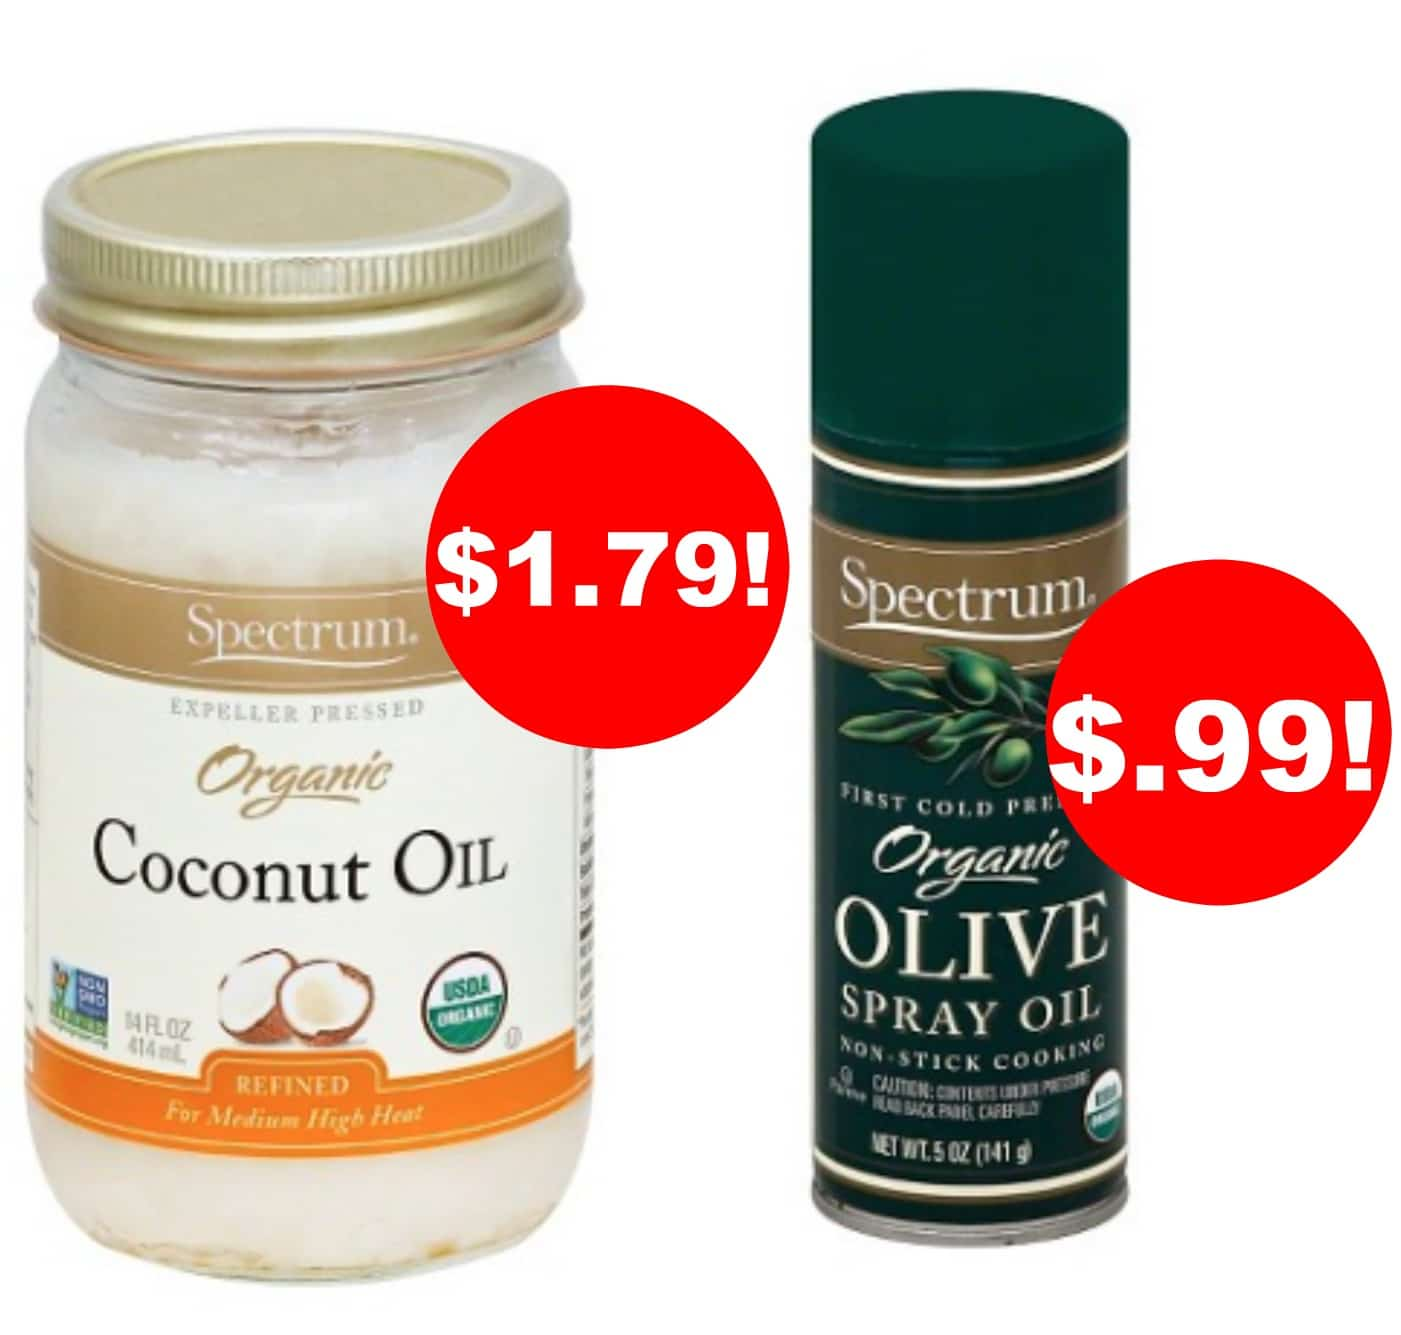 Coconut oil coupon 2018